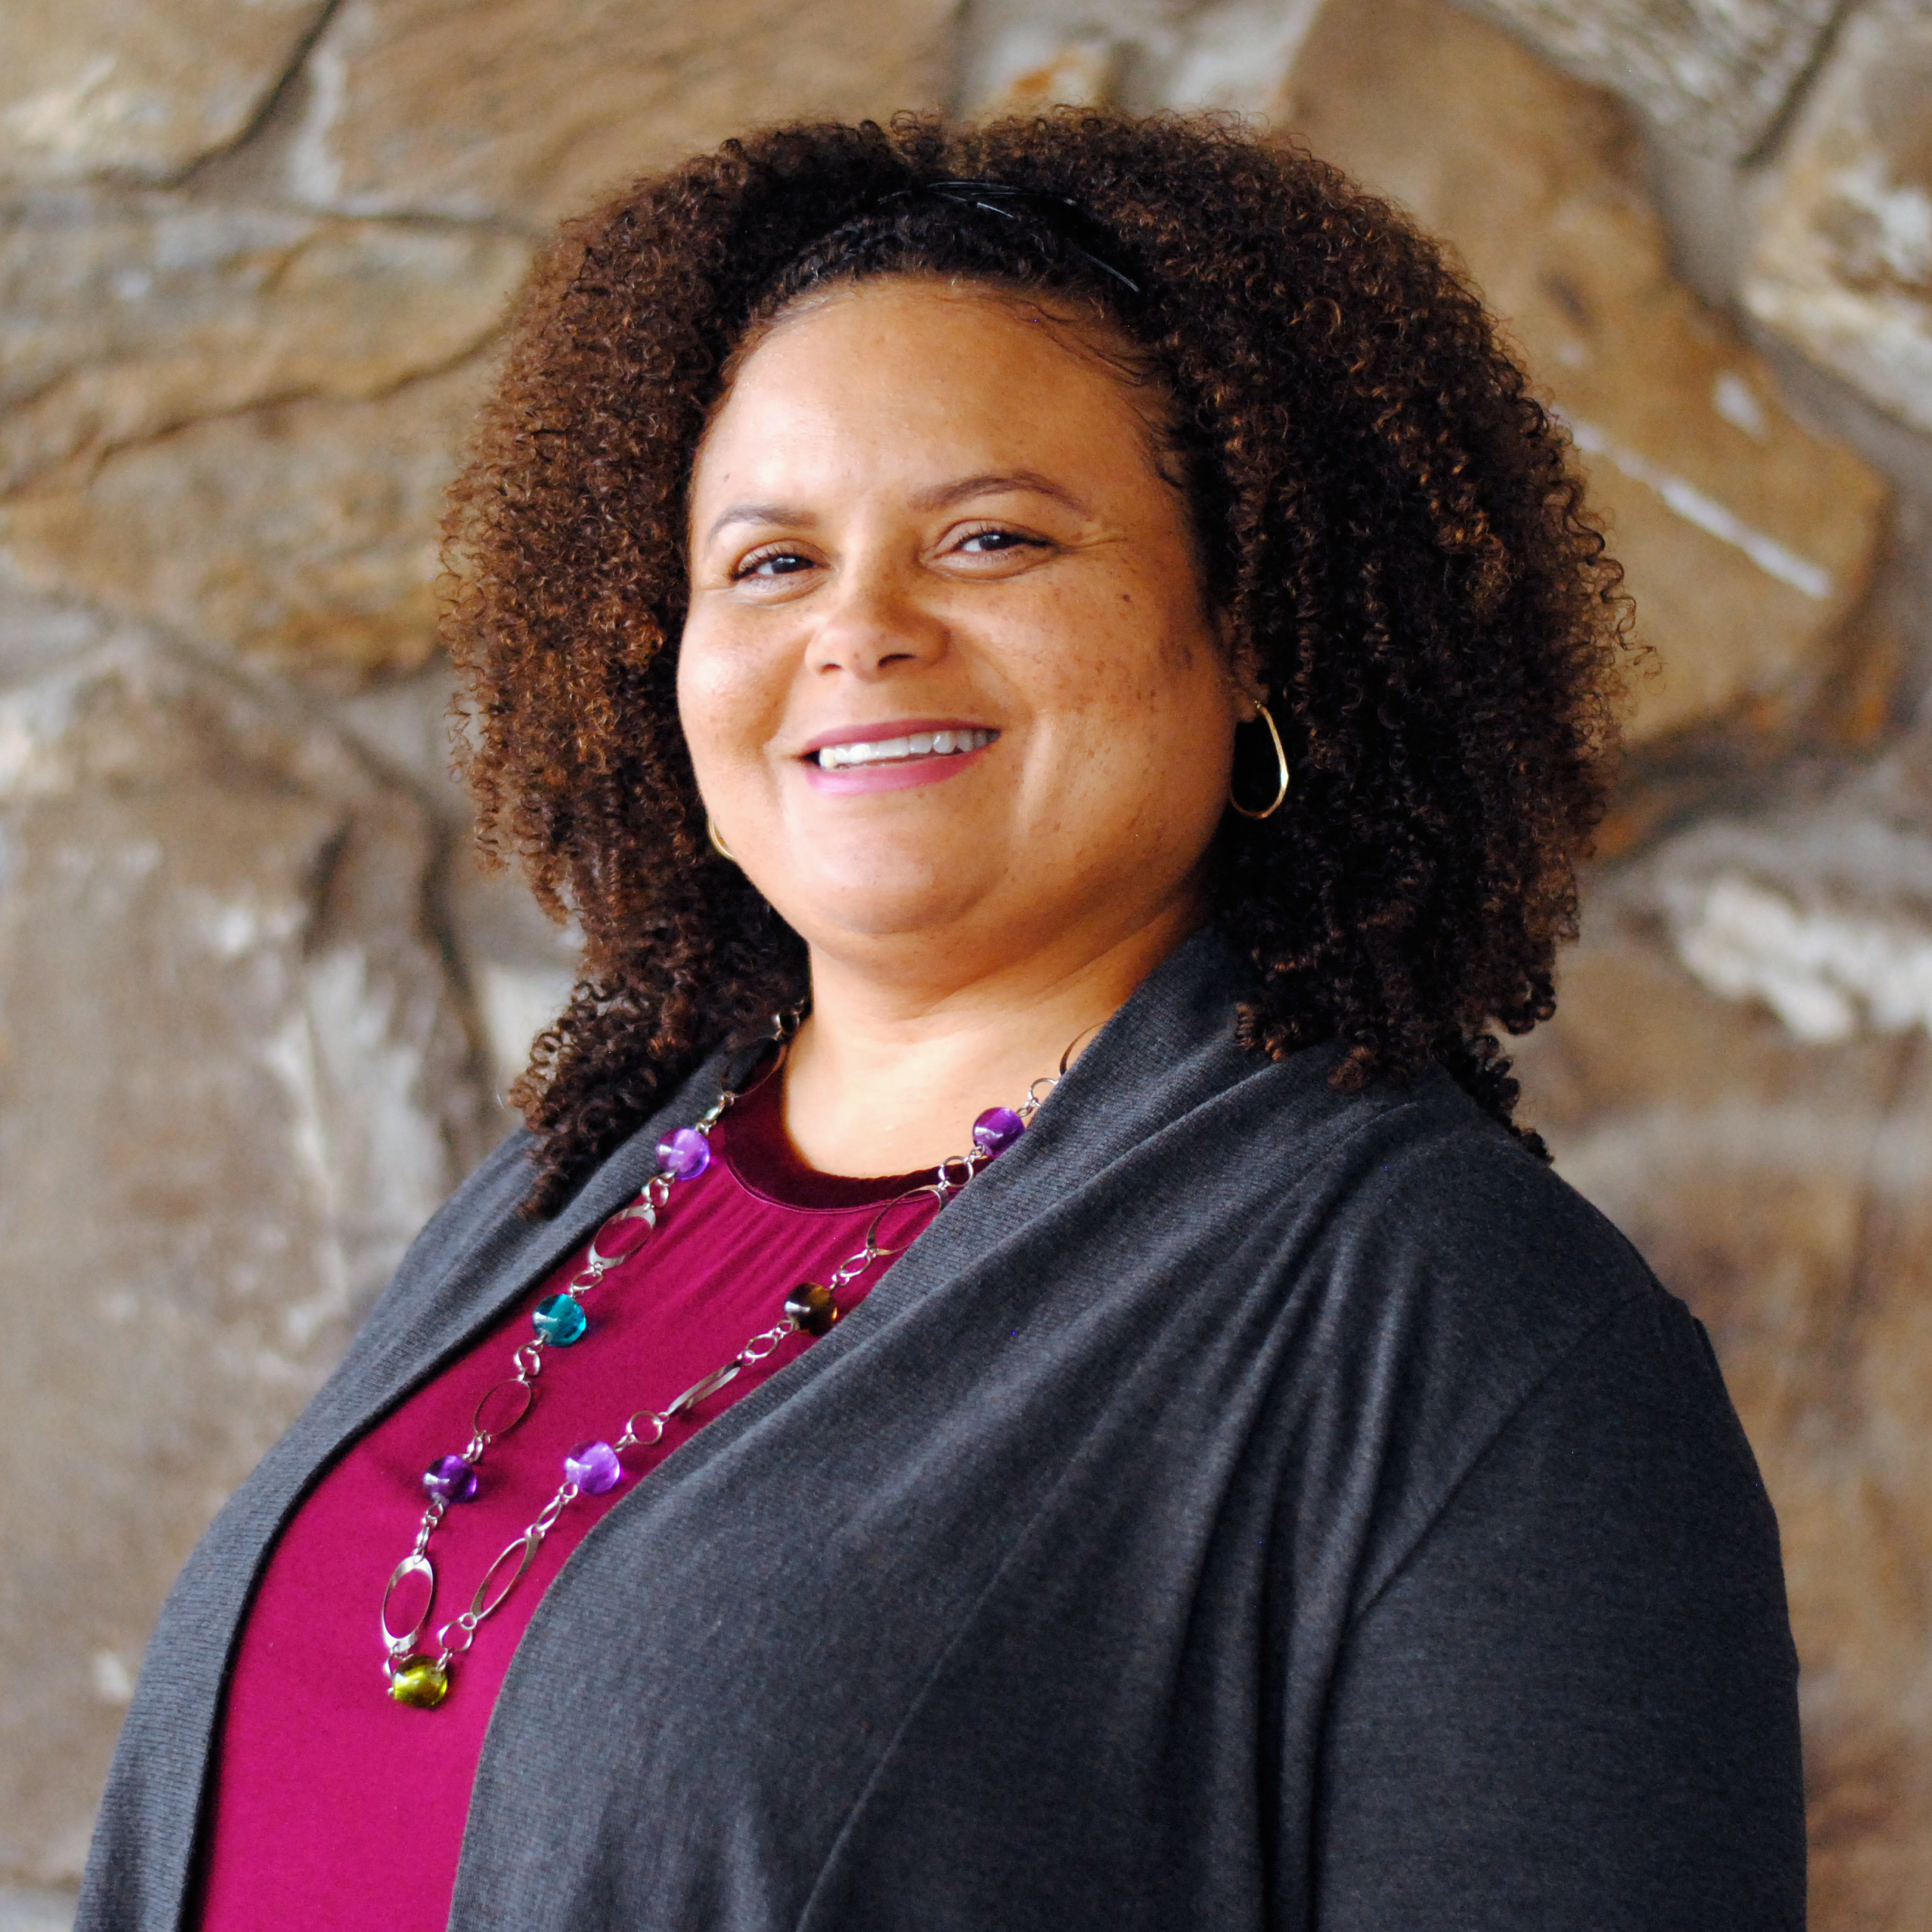 Photo of Babette Allen, Executive Director of Operations at Pathlight HOME